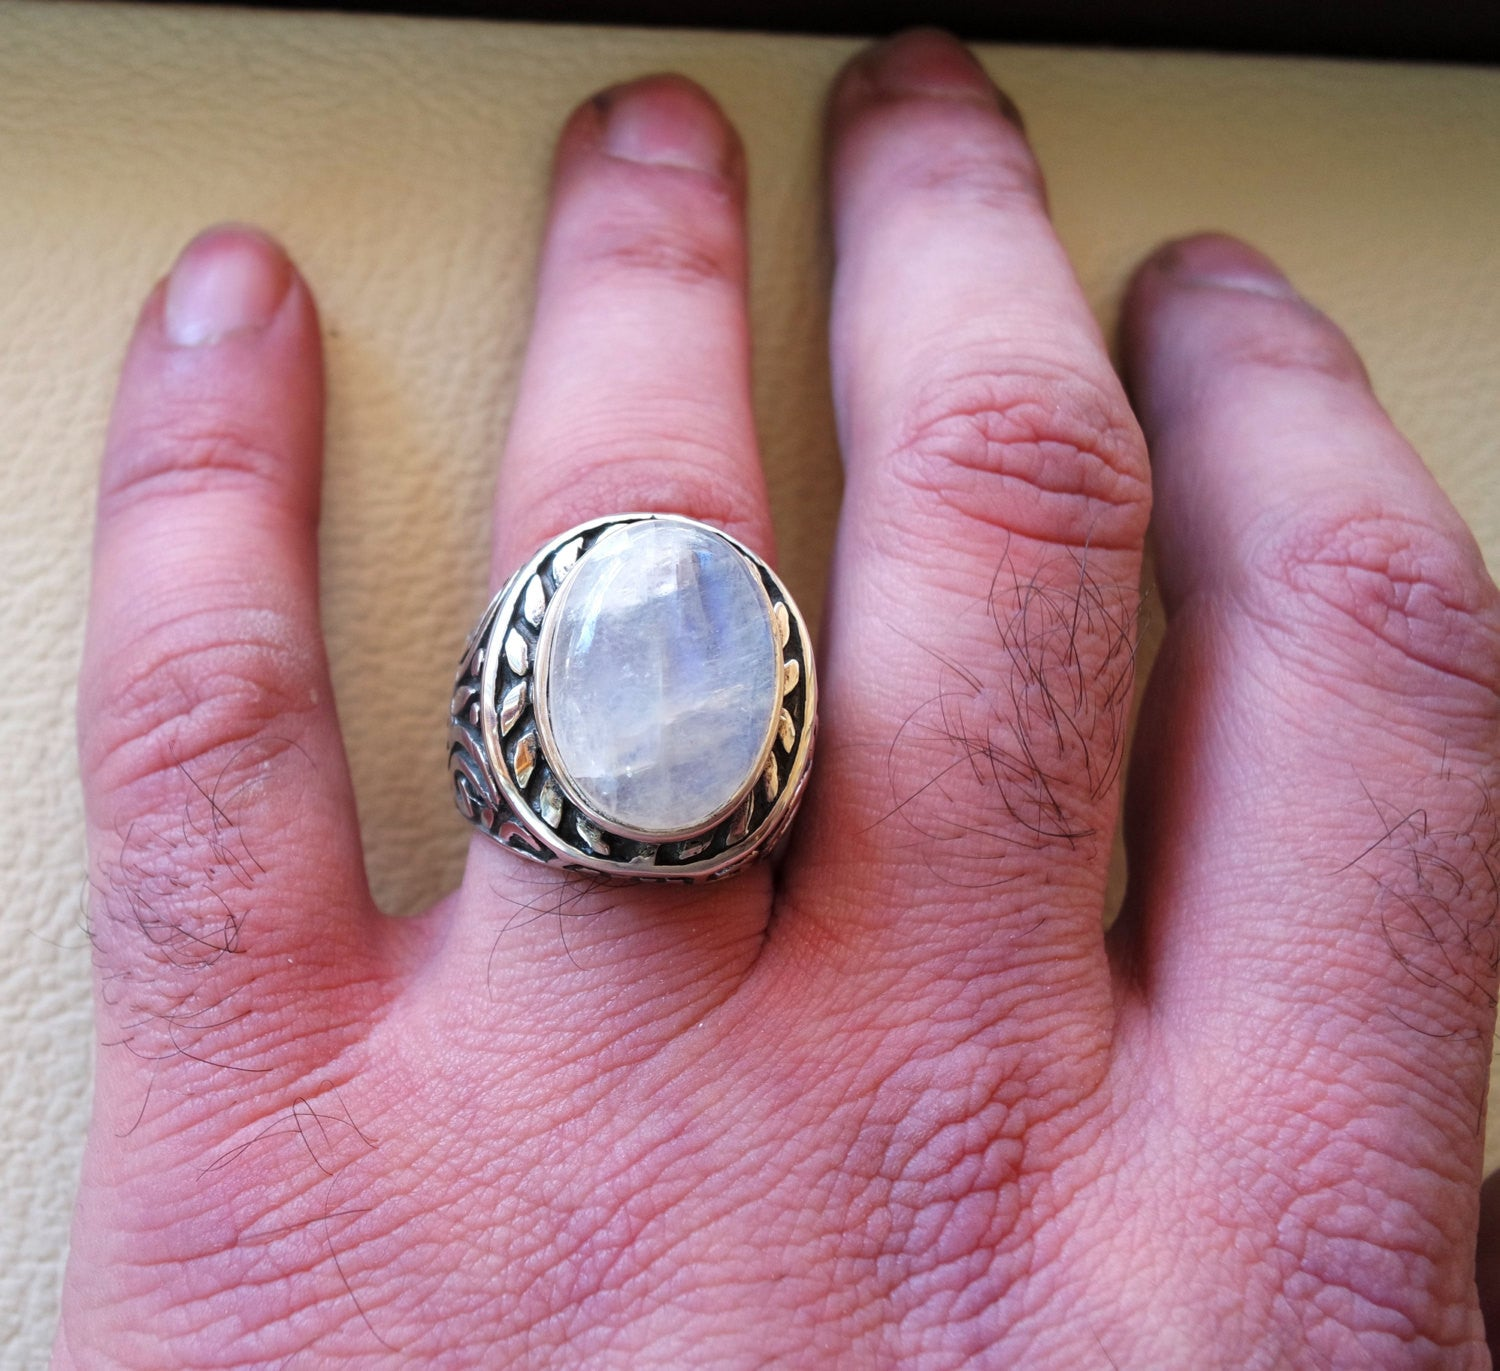 moonstone huge natural stone dur al najaf men ring sterling silver 925 stunning genuine gem two ottoman arabic style jewelry all sizes